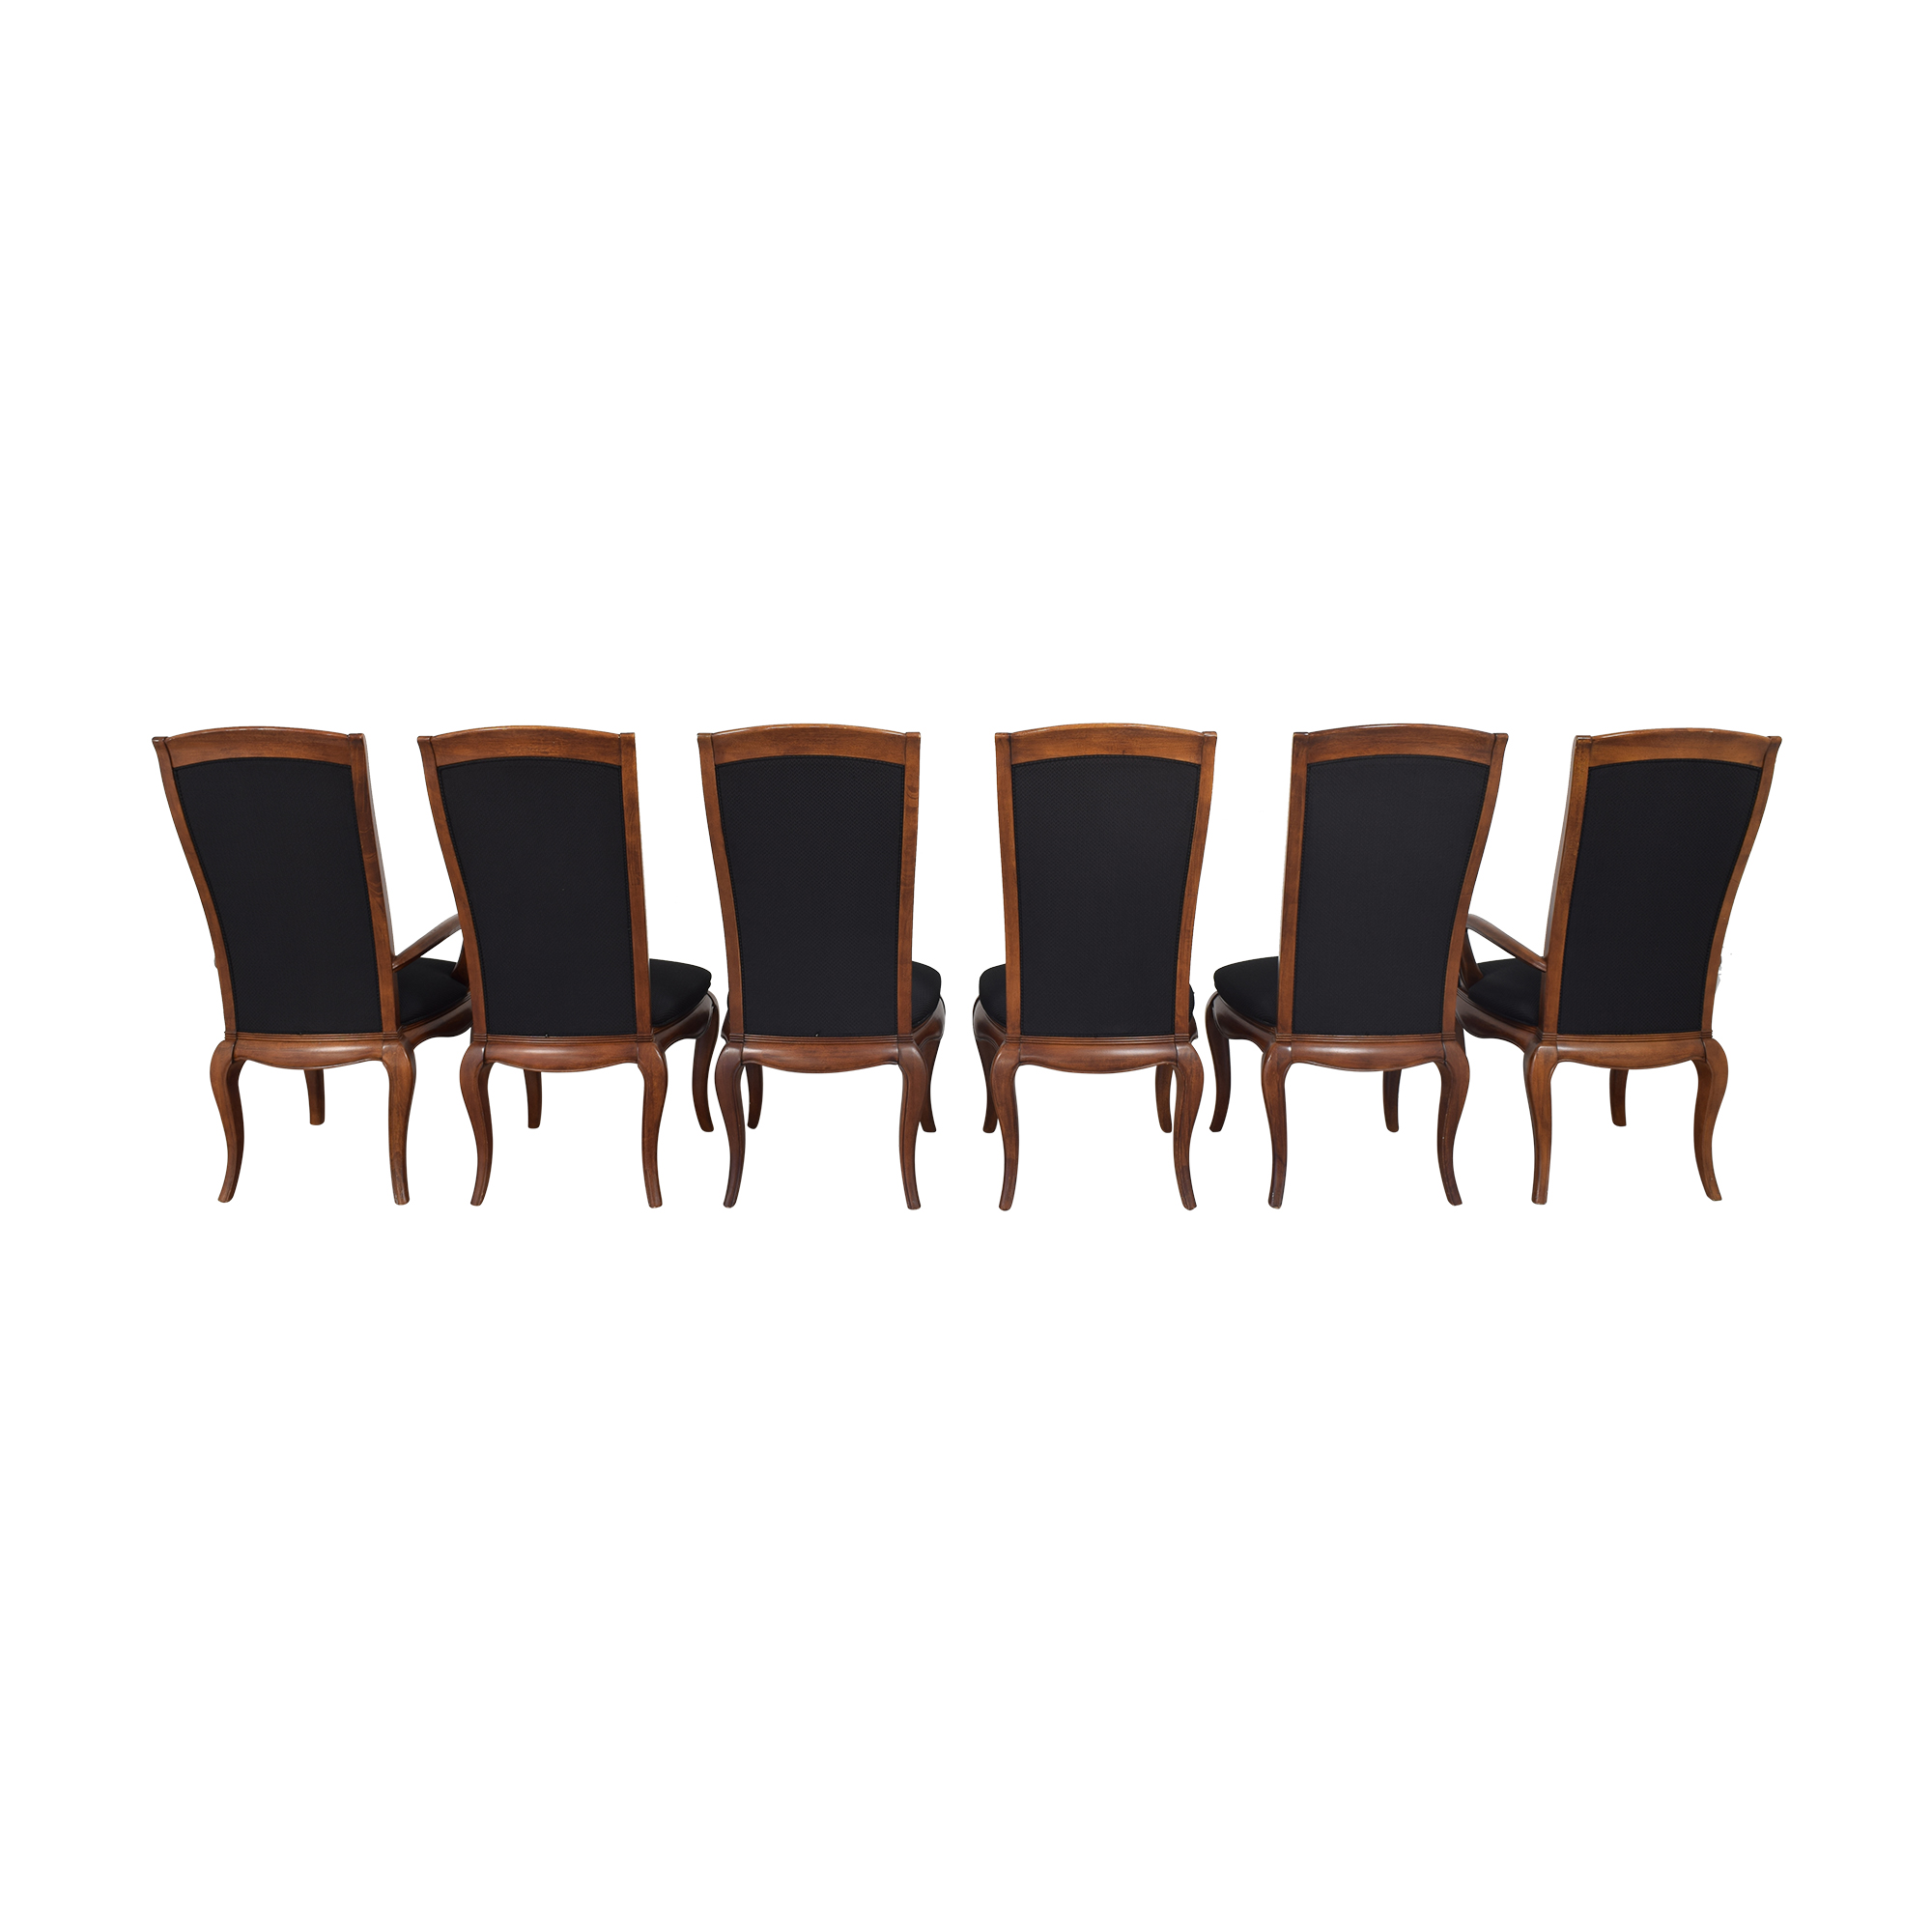 American Drew American Drew High Back Dining Chairs Chairs